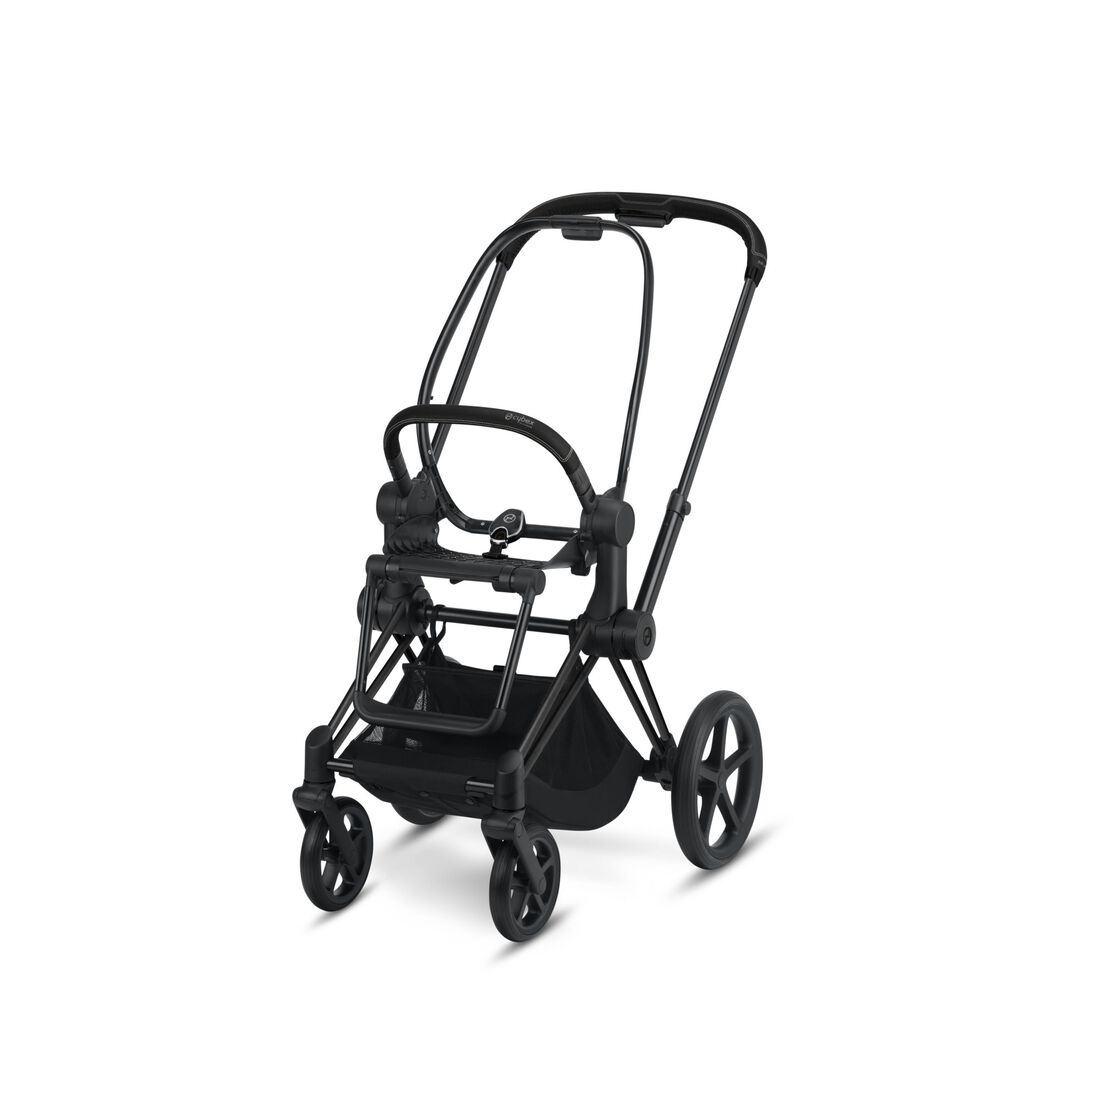 CYBEX Priam Rahmen - Matt Black in Matt Black large Bild 1